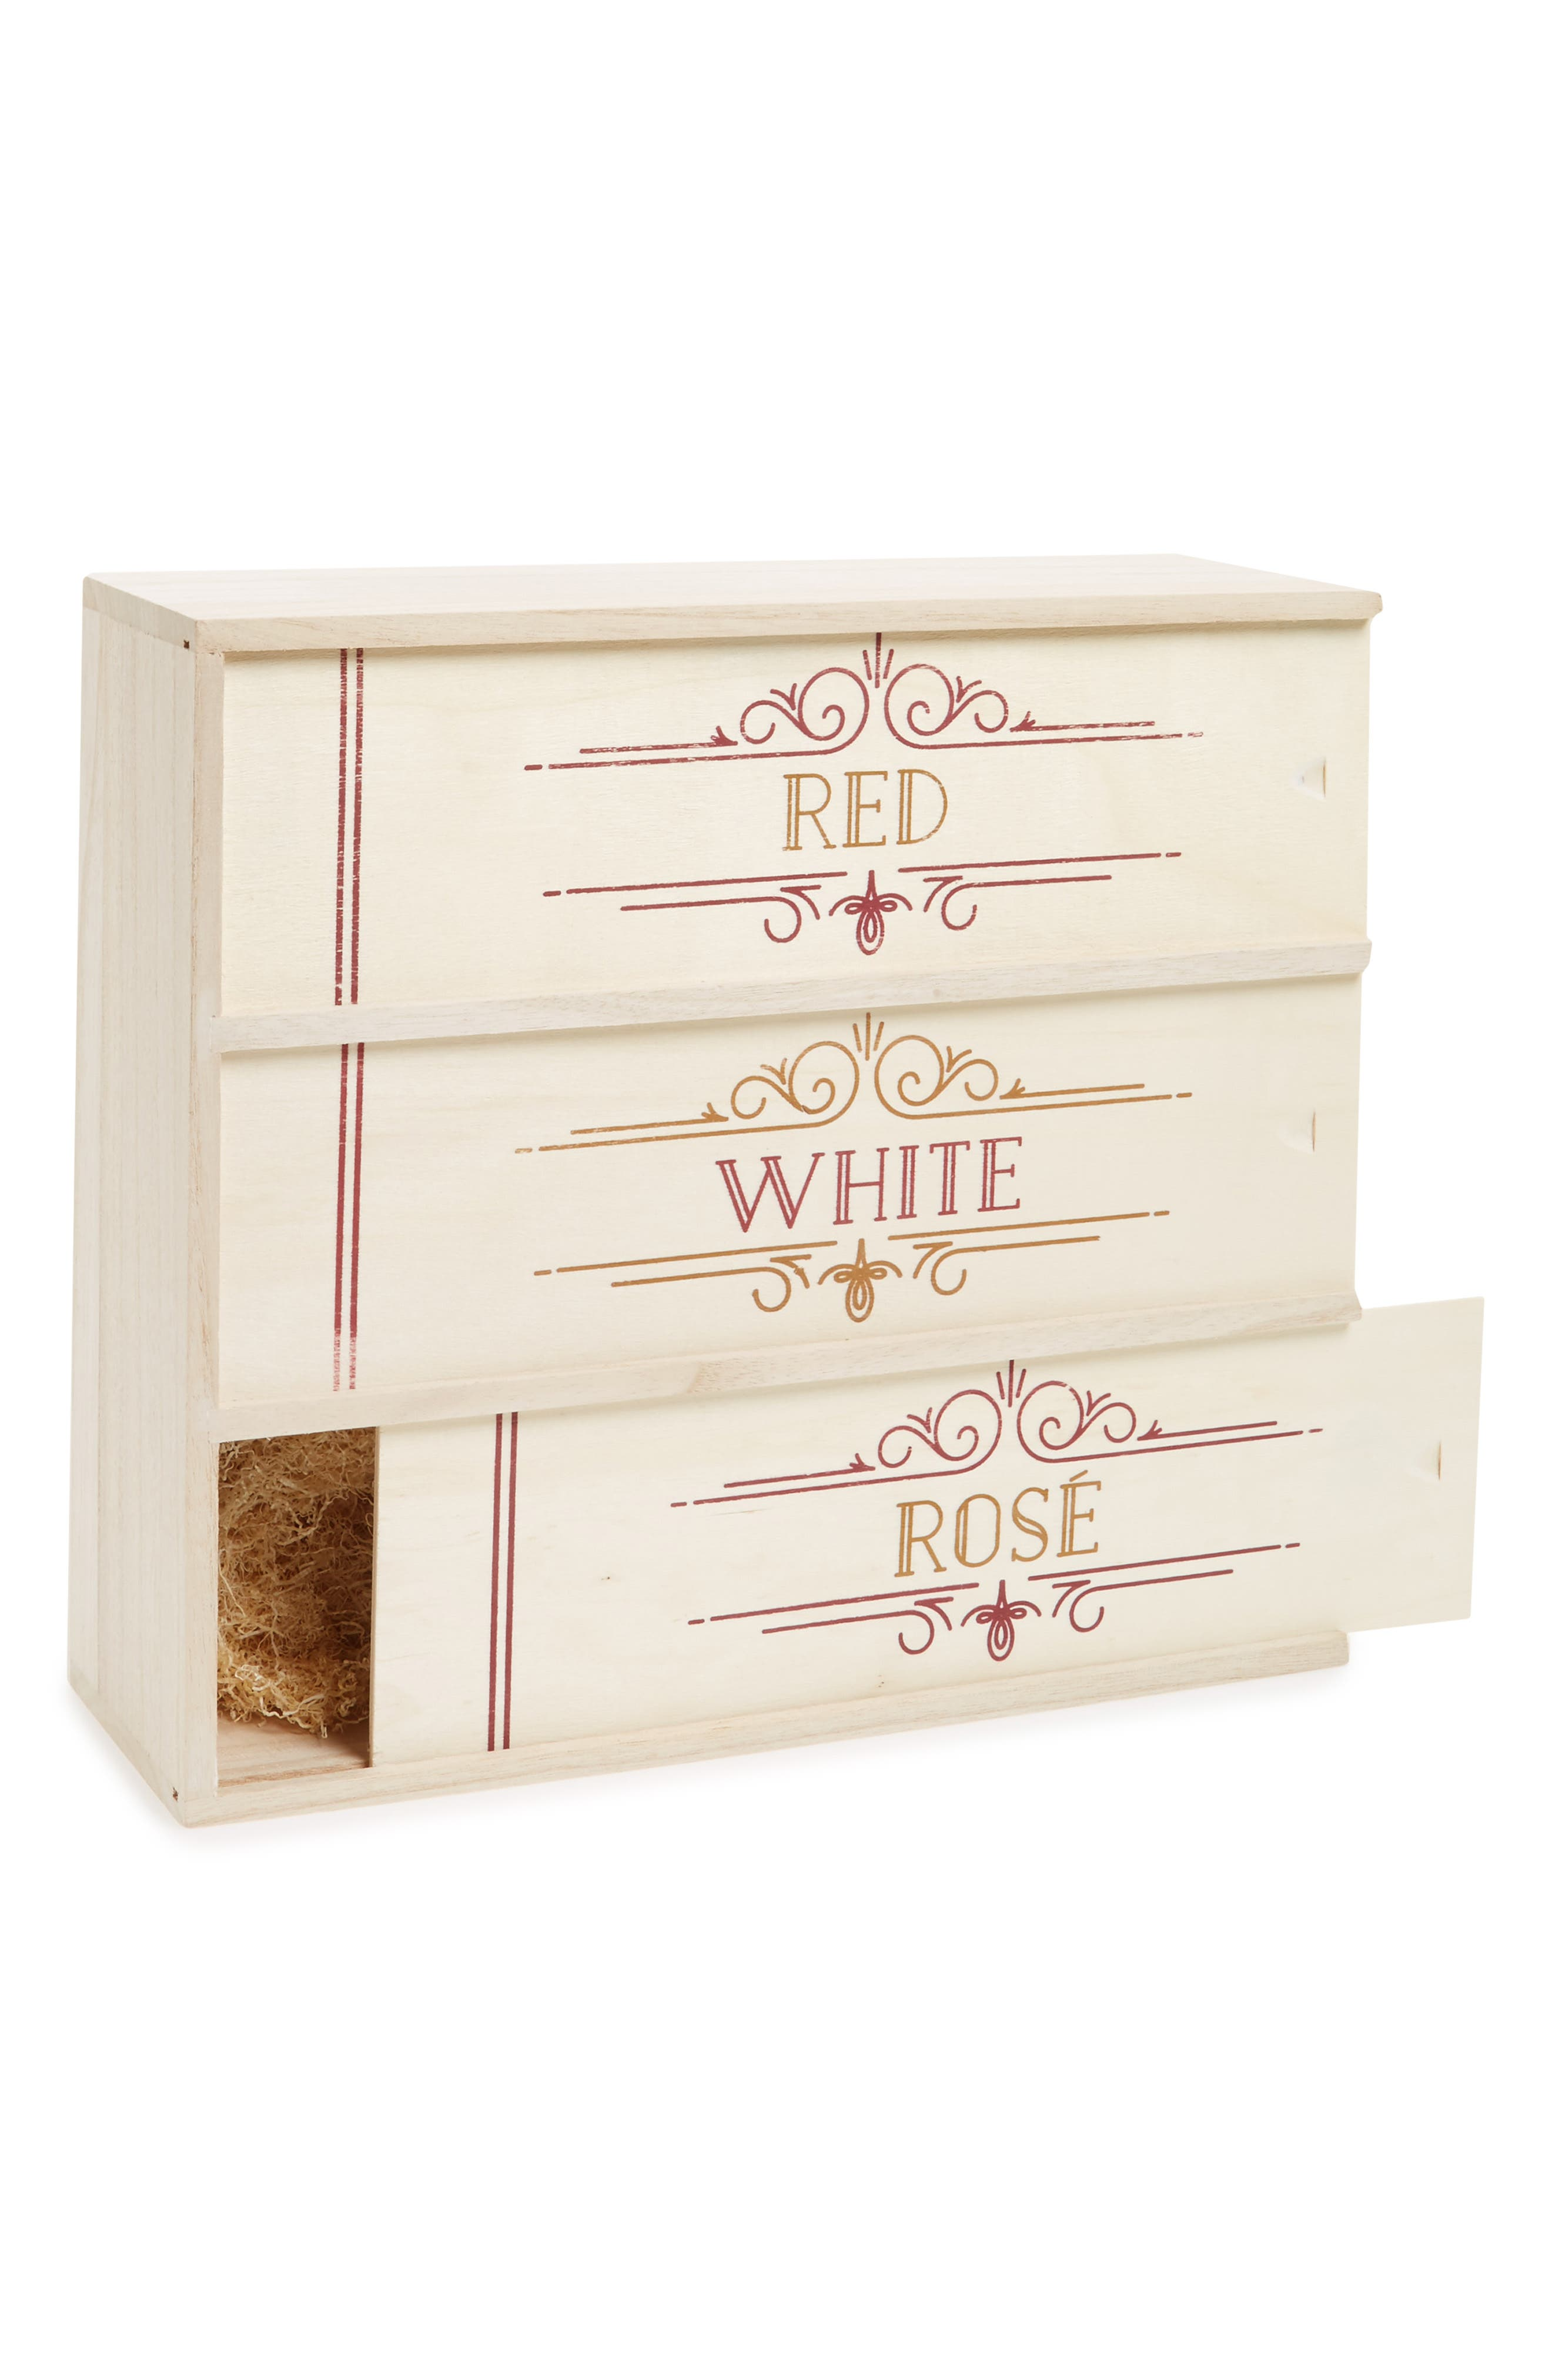 true fabrications Red, White & Rosé Wine Box,                         Main,                         color, 200